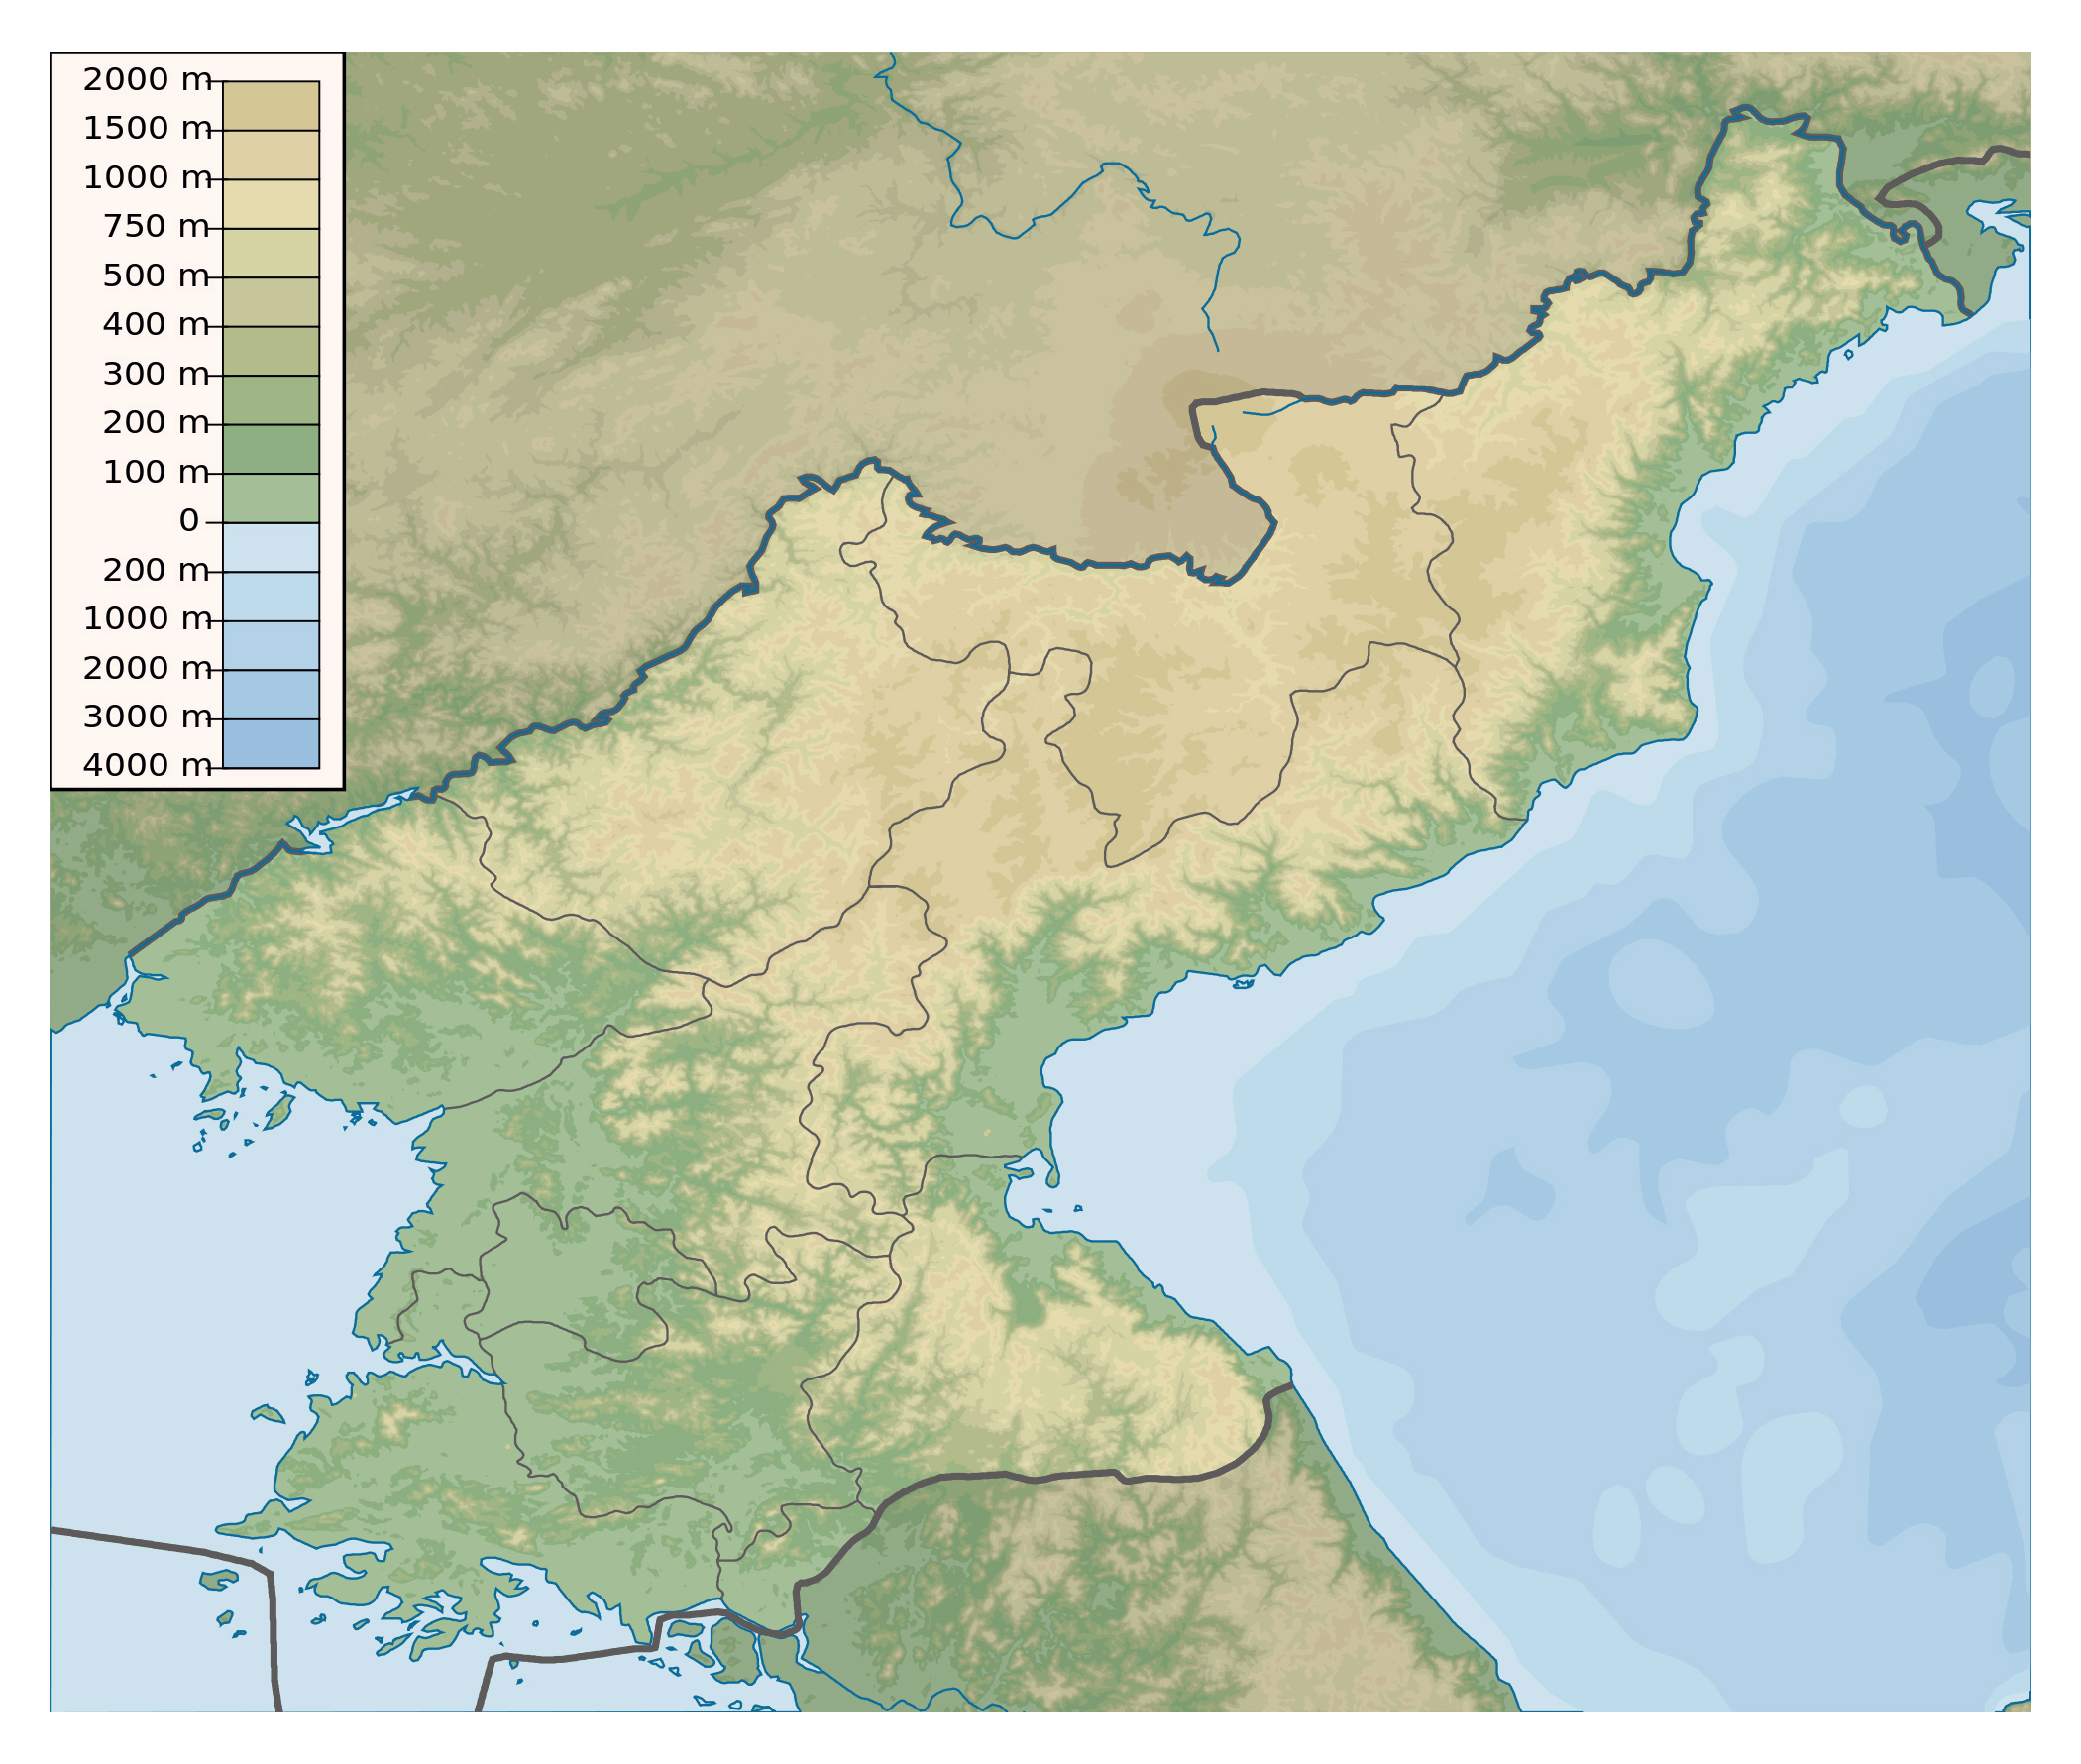 Maps Of North Korea DPRK Detailed Map Of North Korea In - North america physical map test